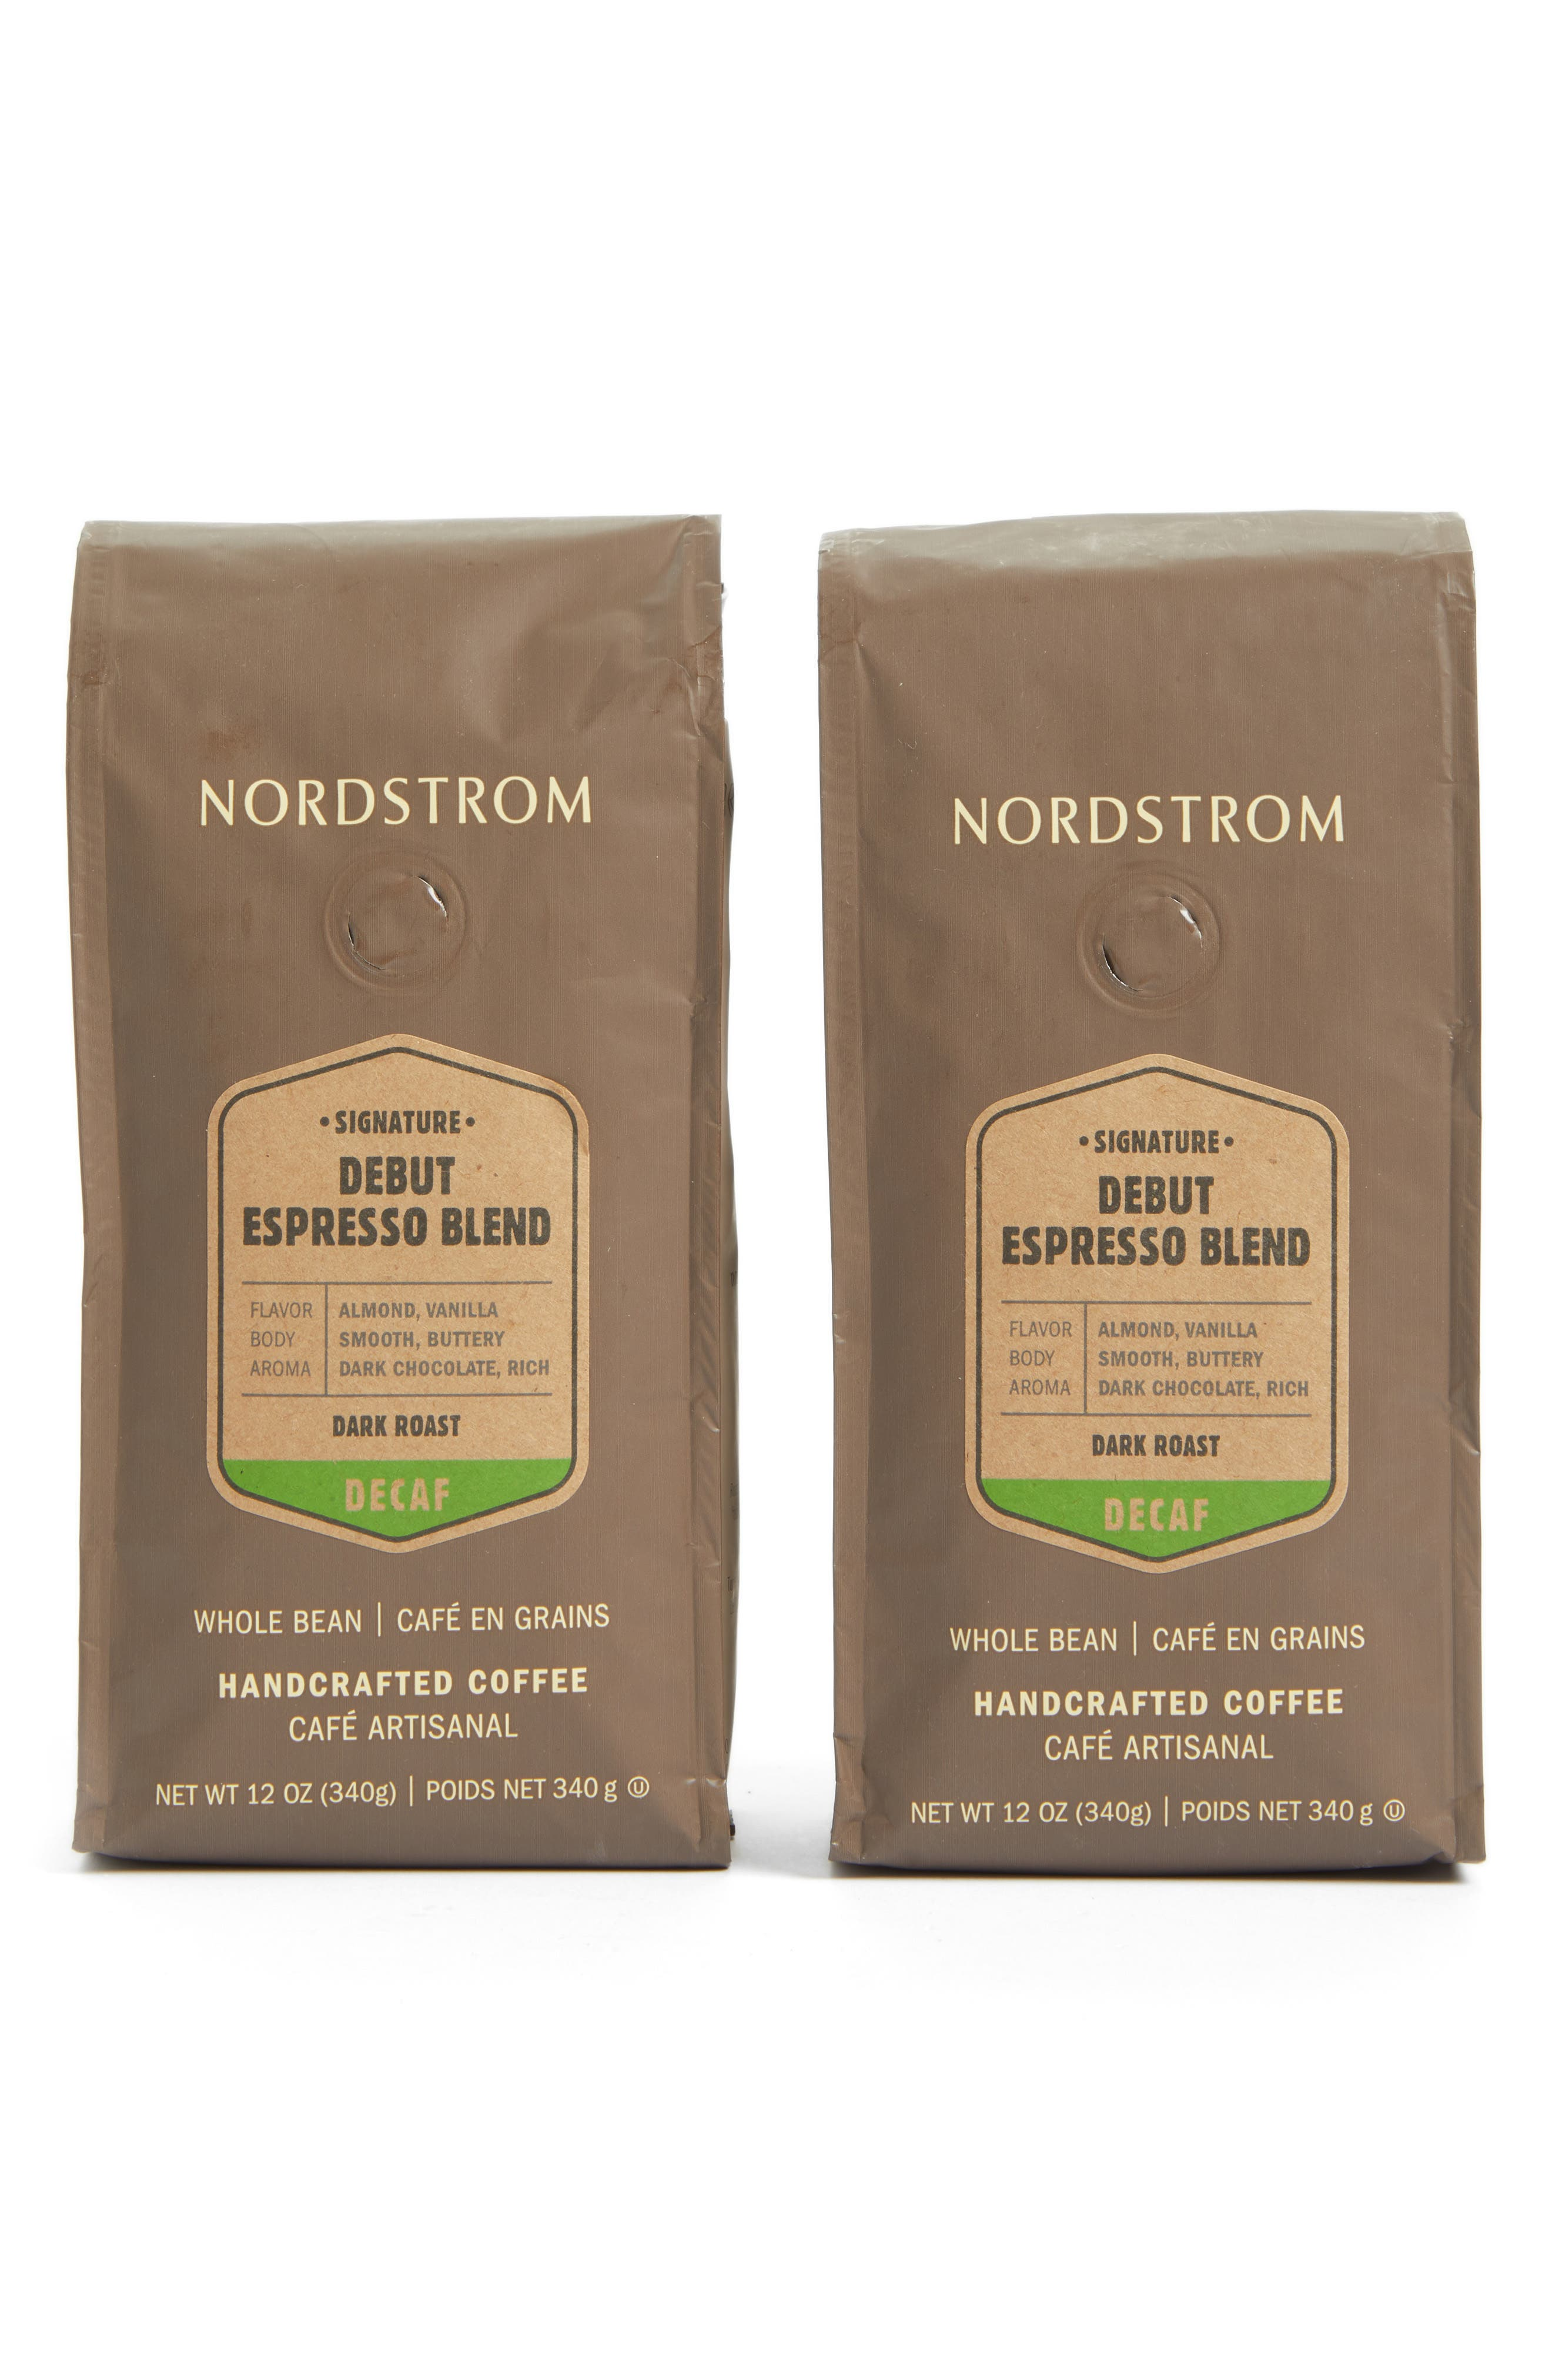 Nordstrom Coffee 'Debut Espresso Blend - Decaf' Whole Bean Coffee (2-Pack)